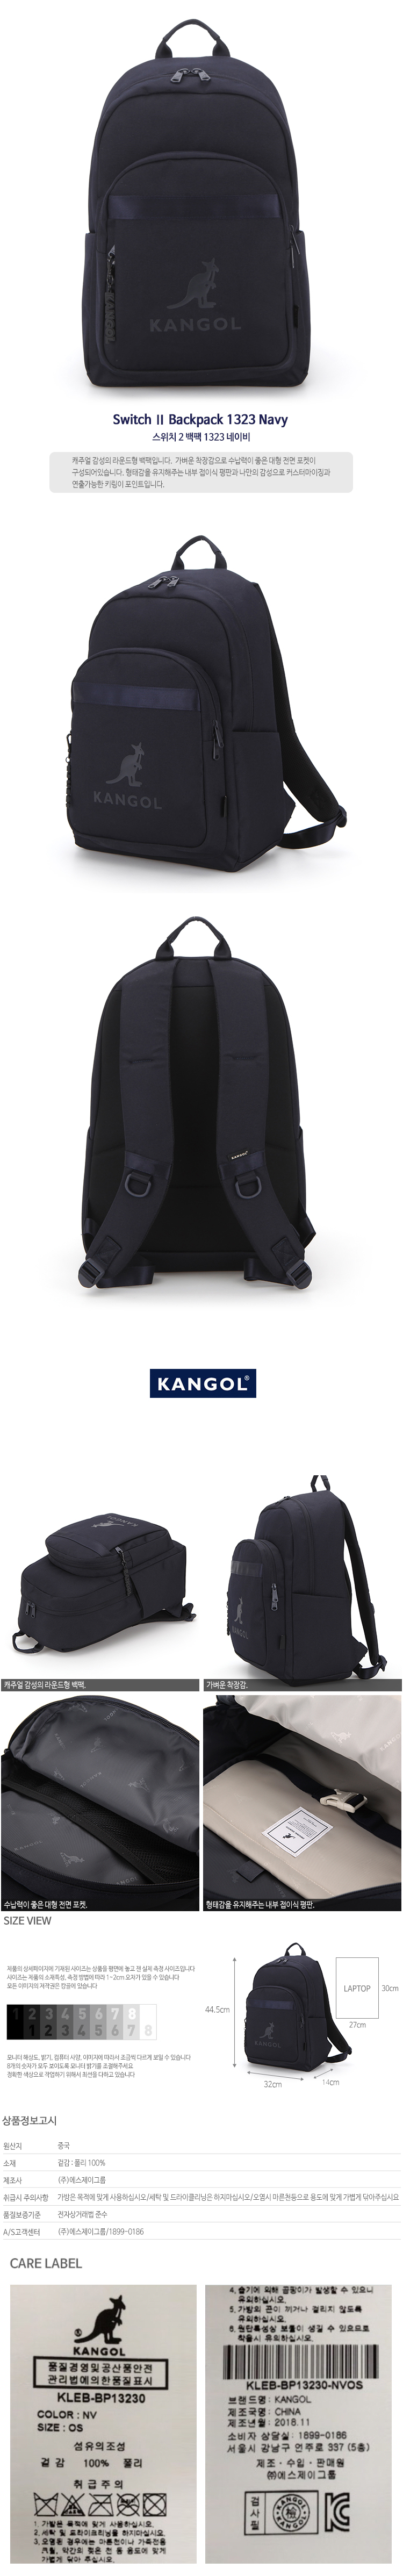 Switch Ⅱ Backpack 1323 NAVY